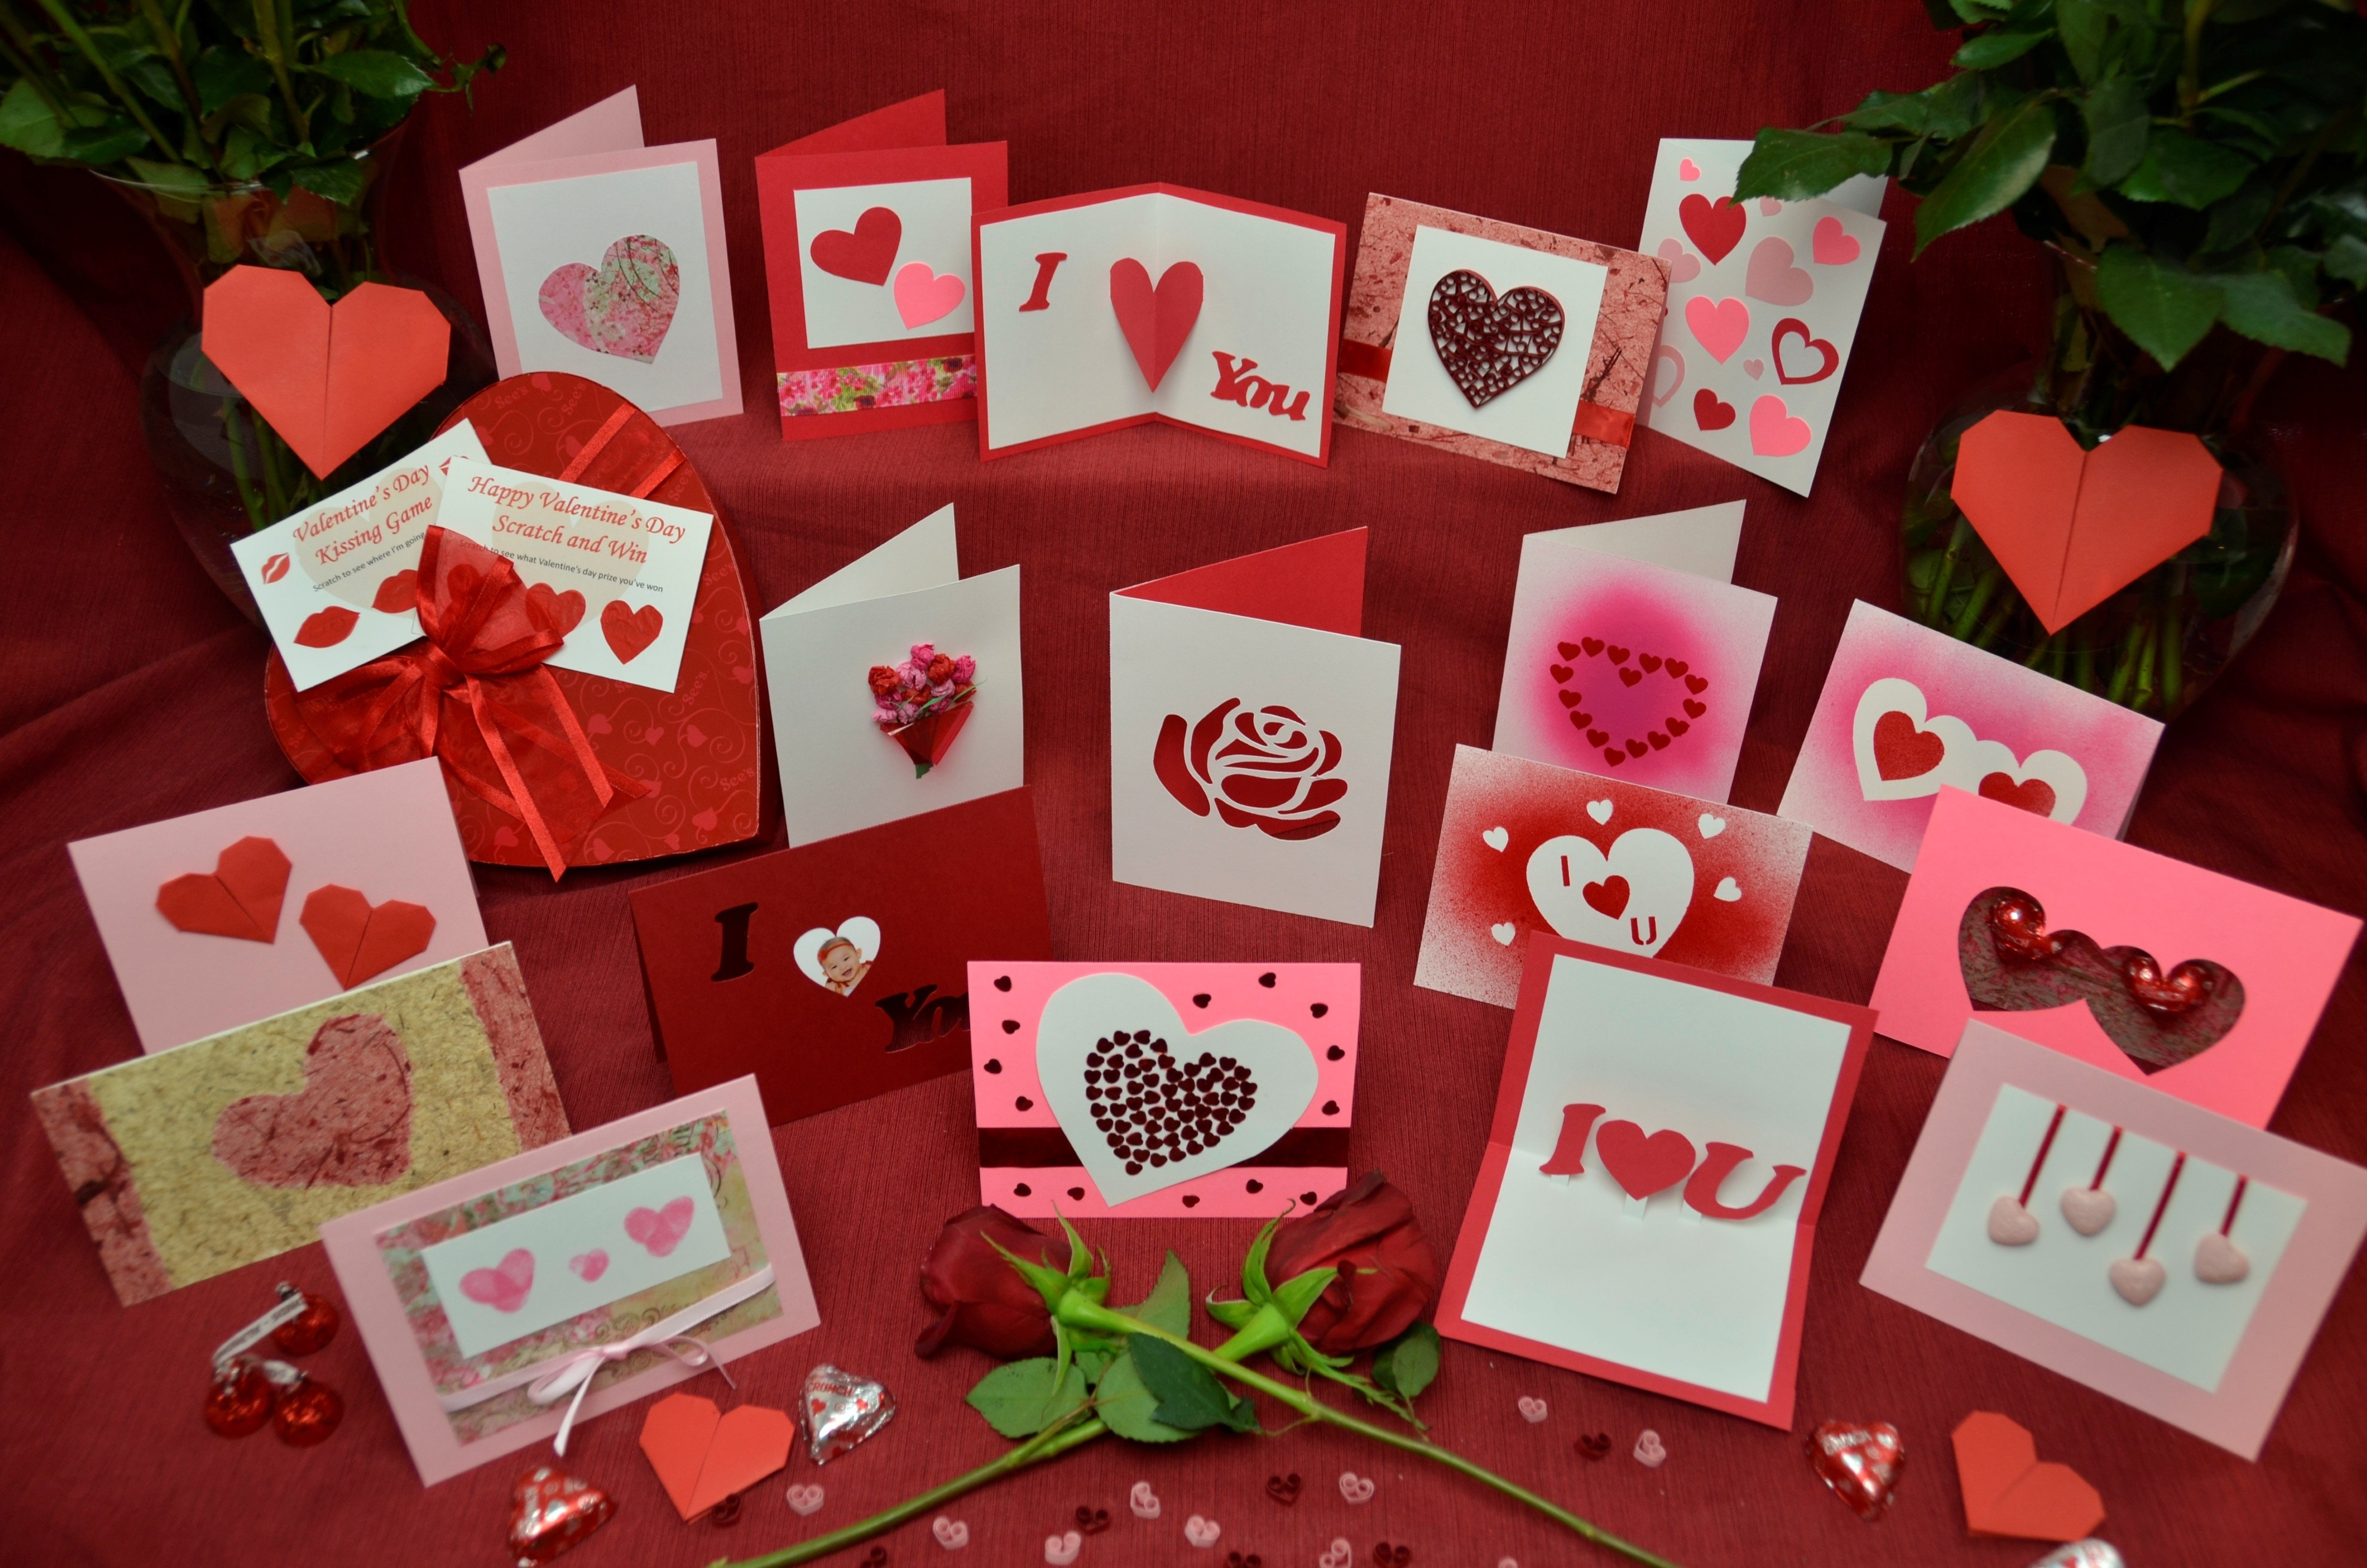 10 Fabulous Best Ideas For Valentines Day top 10 ideas for valentines day cards creative pop up cards 7 2020